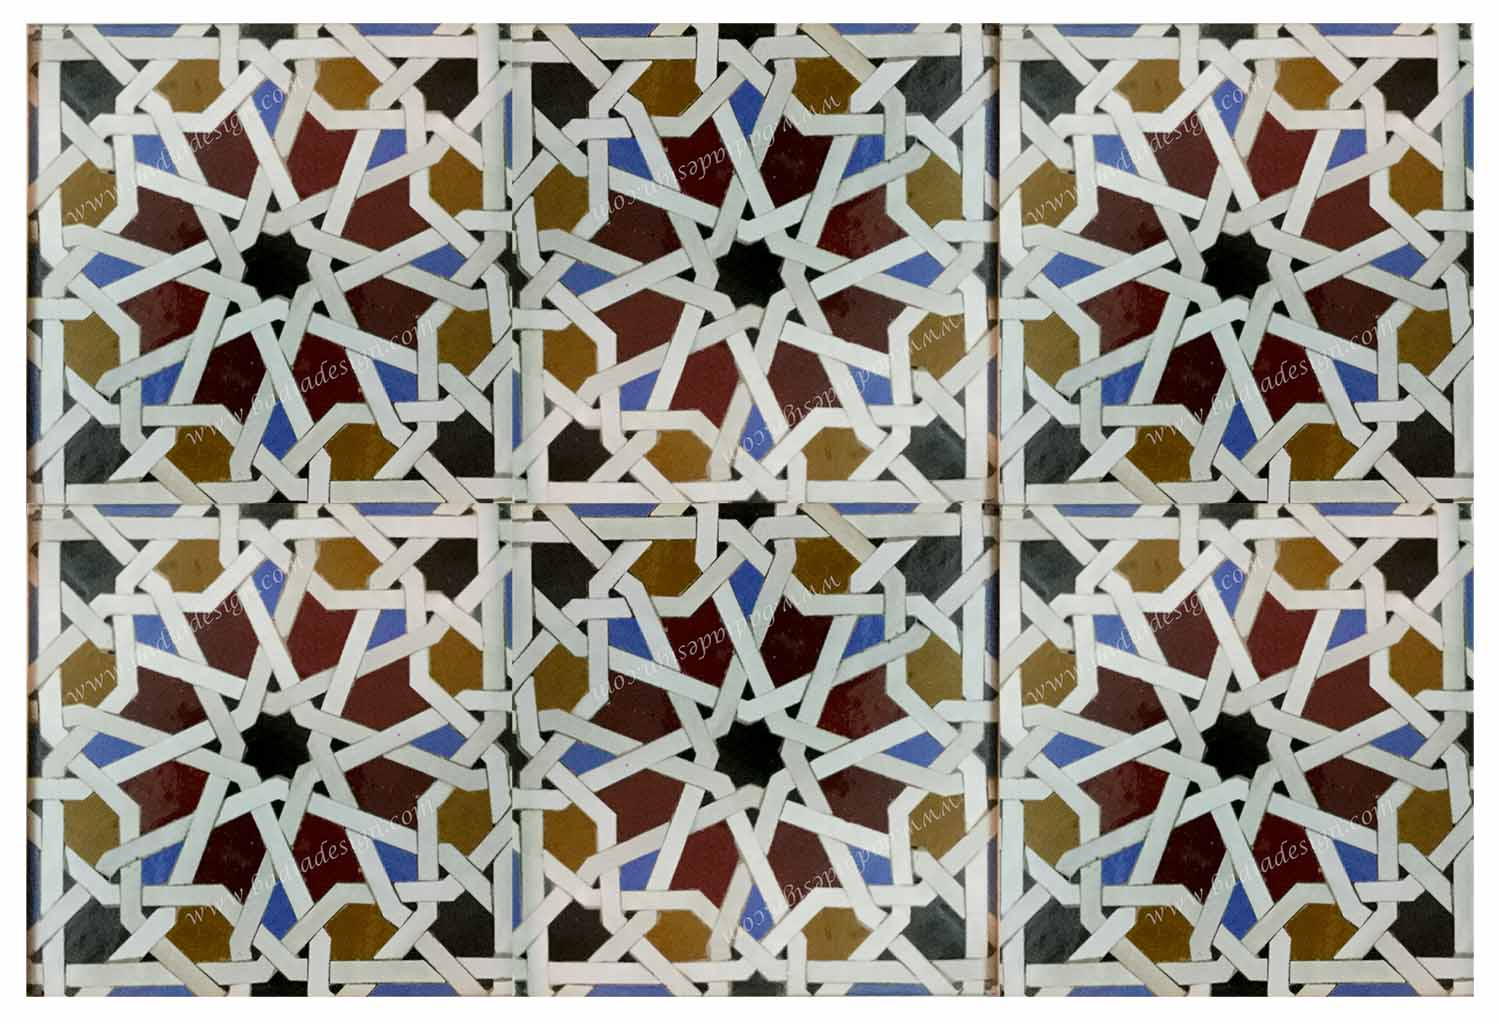 moroccan-hand-painted-mosaic-floor-tile-tm040-2.jpg